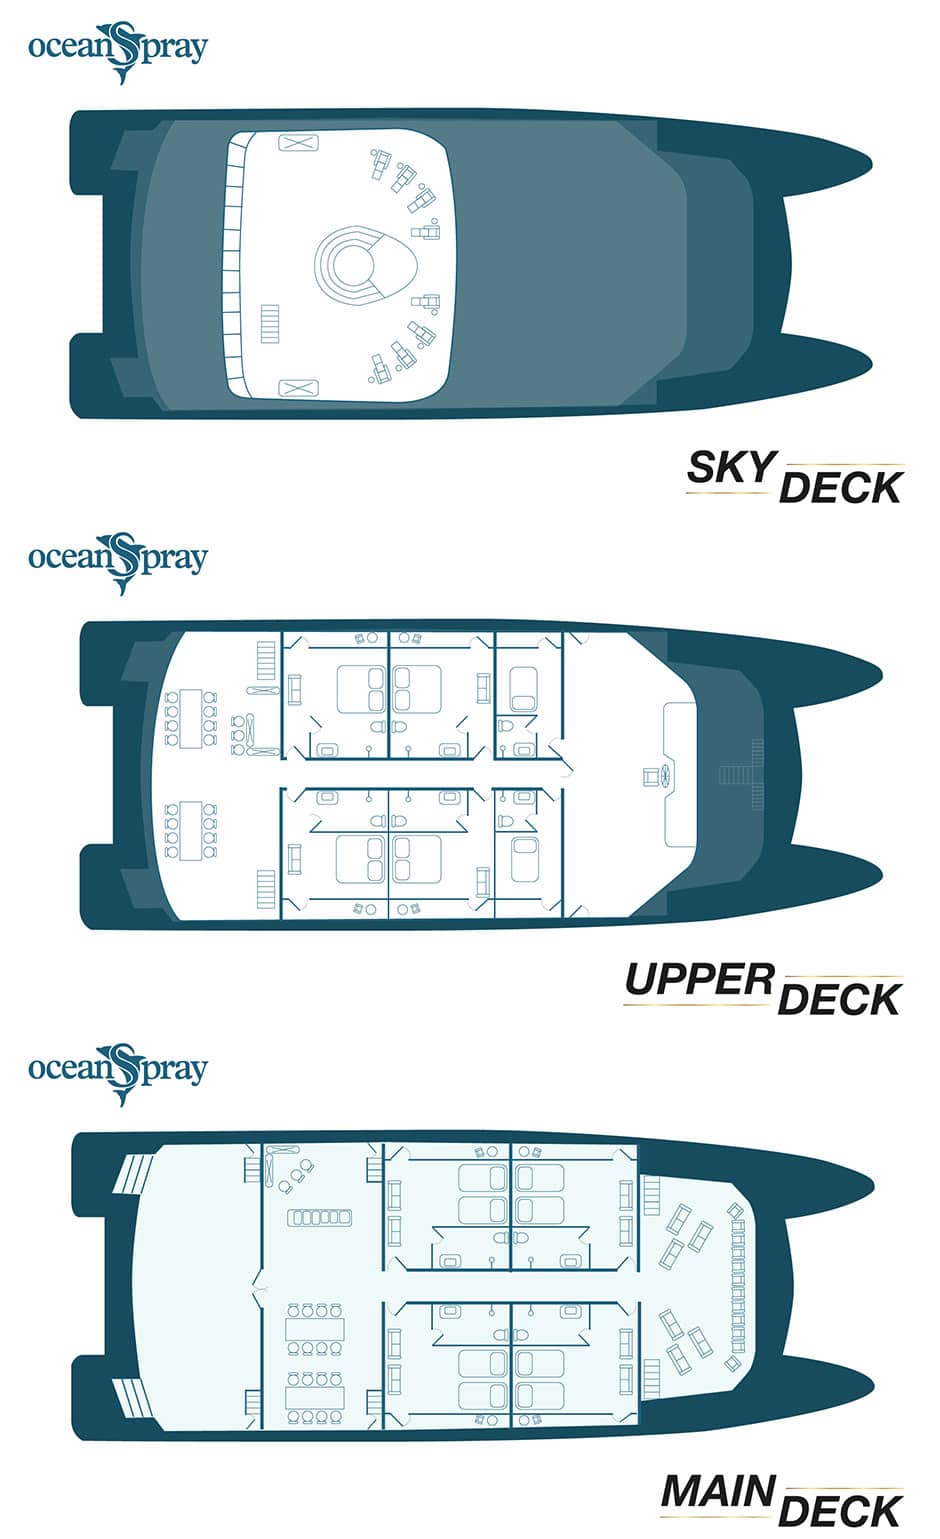 ocean spray small ship deck plan showing 3 decks, 2 with passenger cabins, 1 with a Jacuzzi.